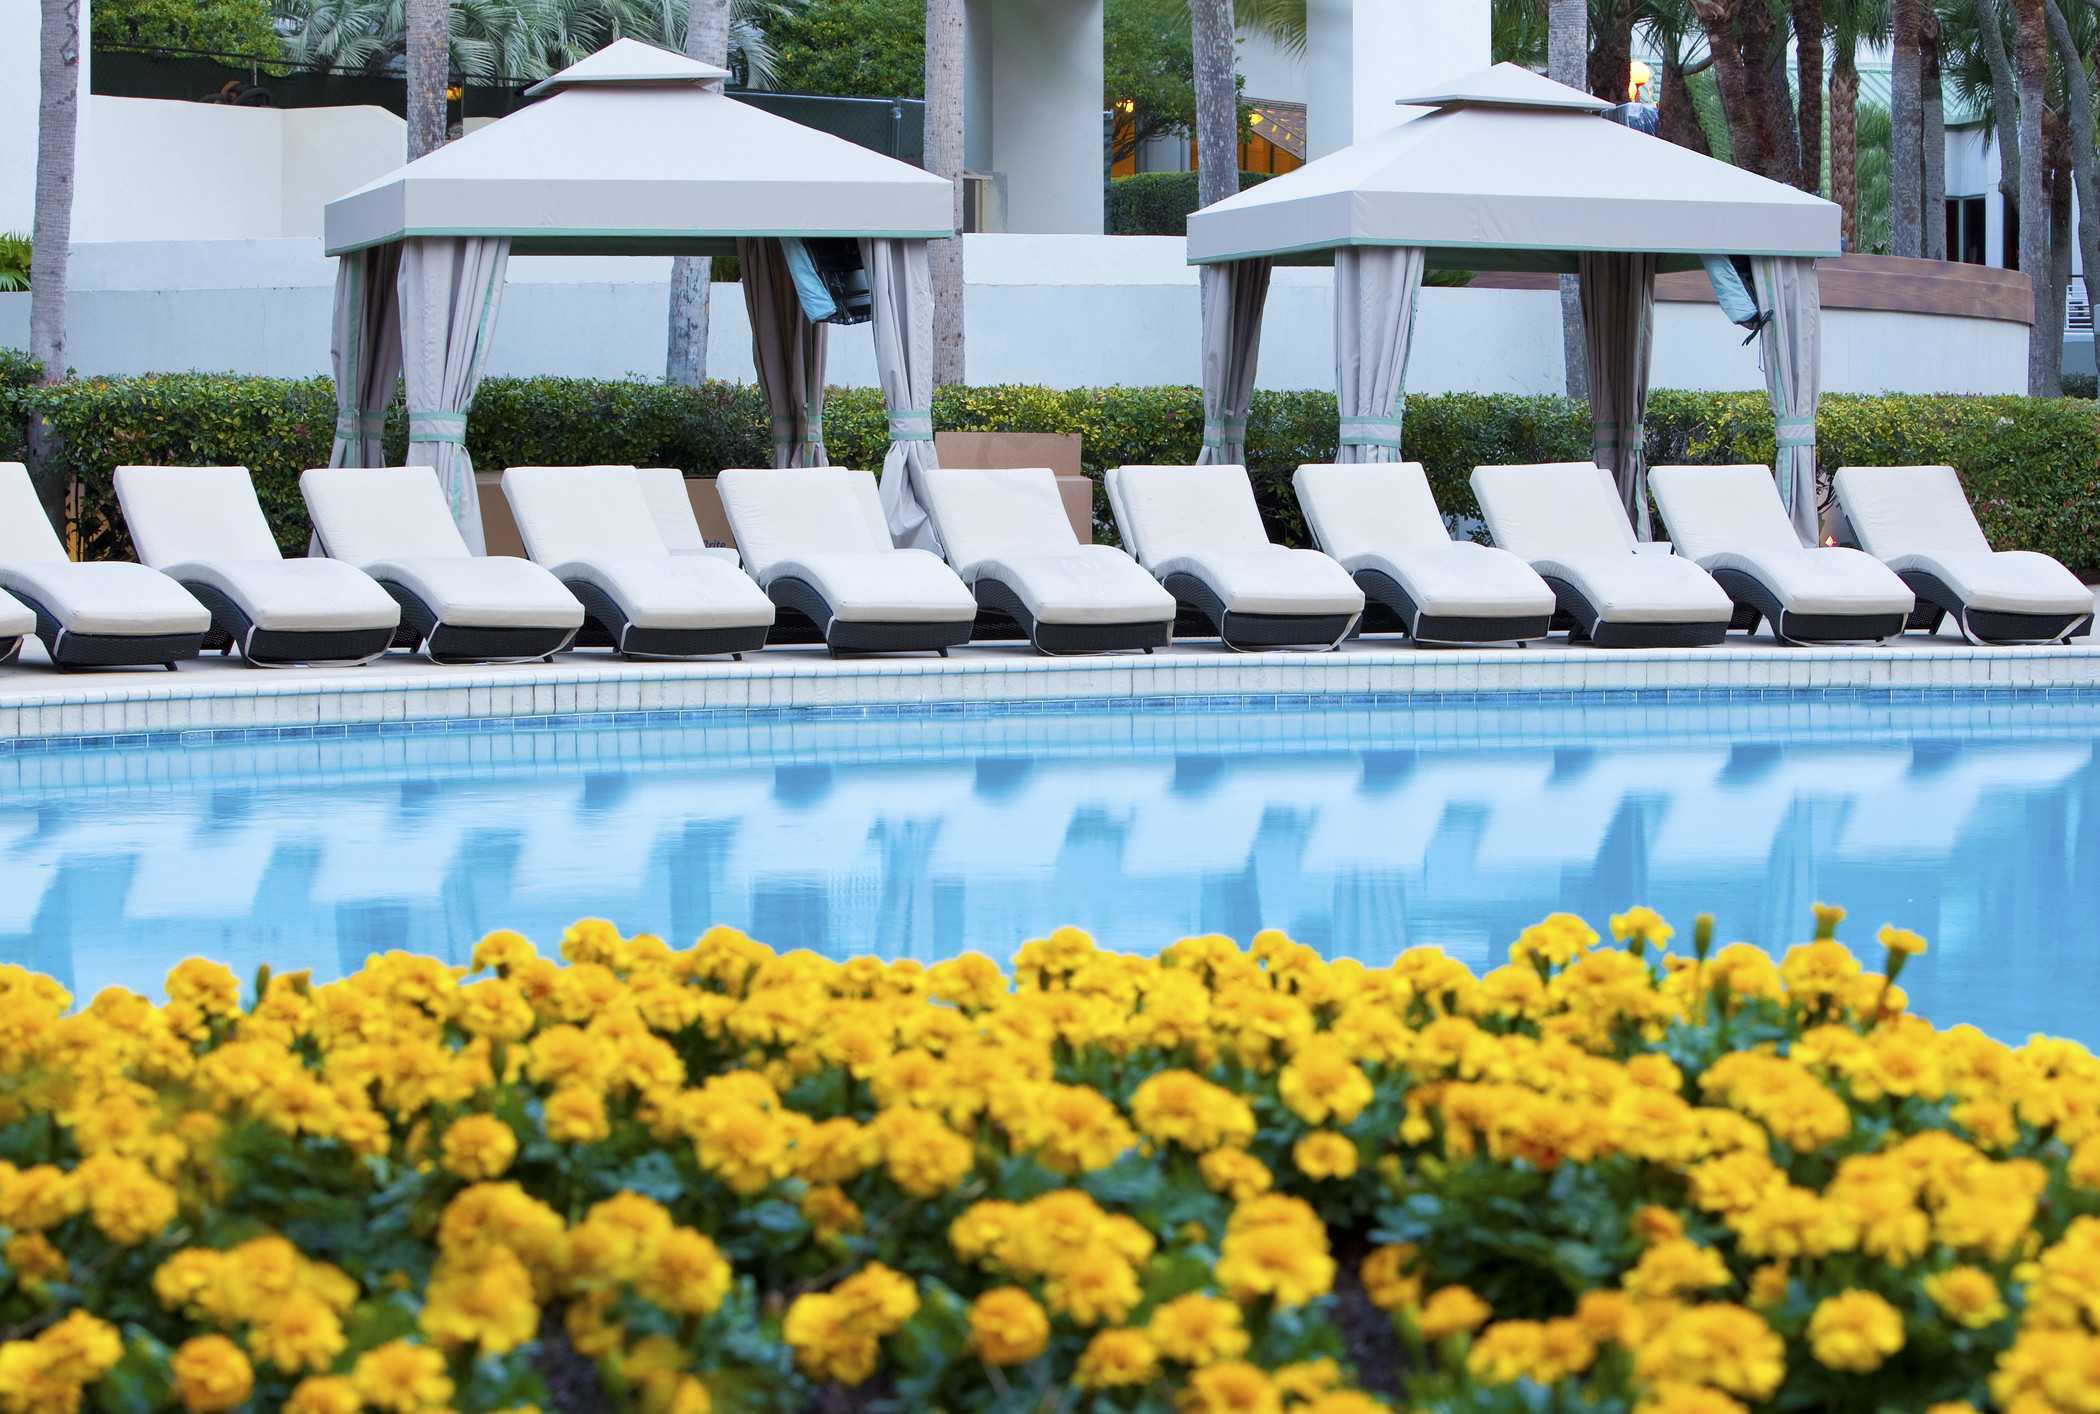 a large pool on a sunny day surrounded with pool lounge chairs and bright flowers